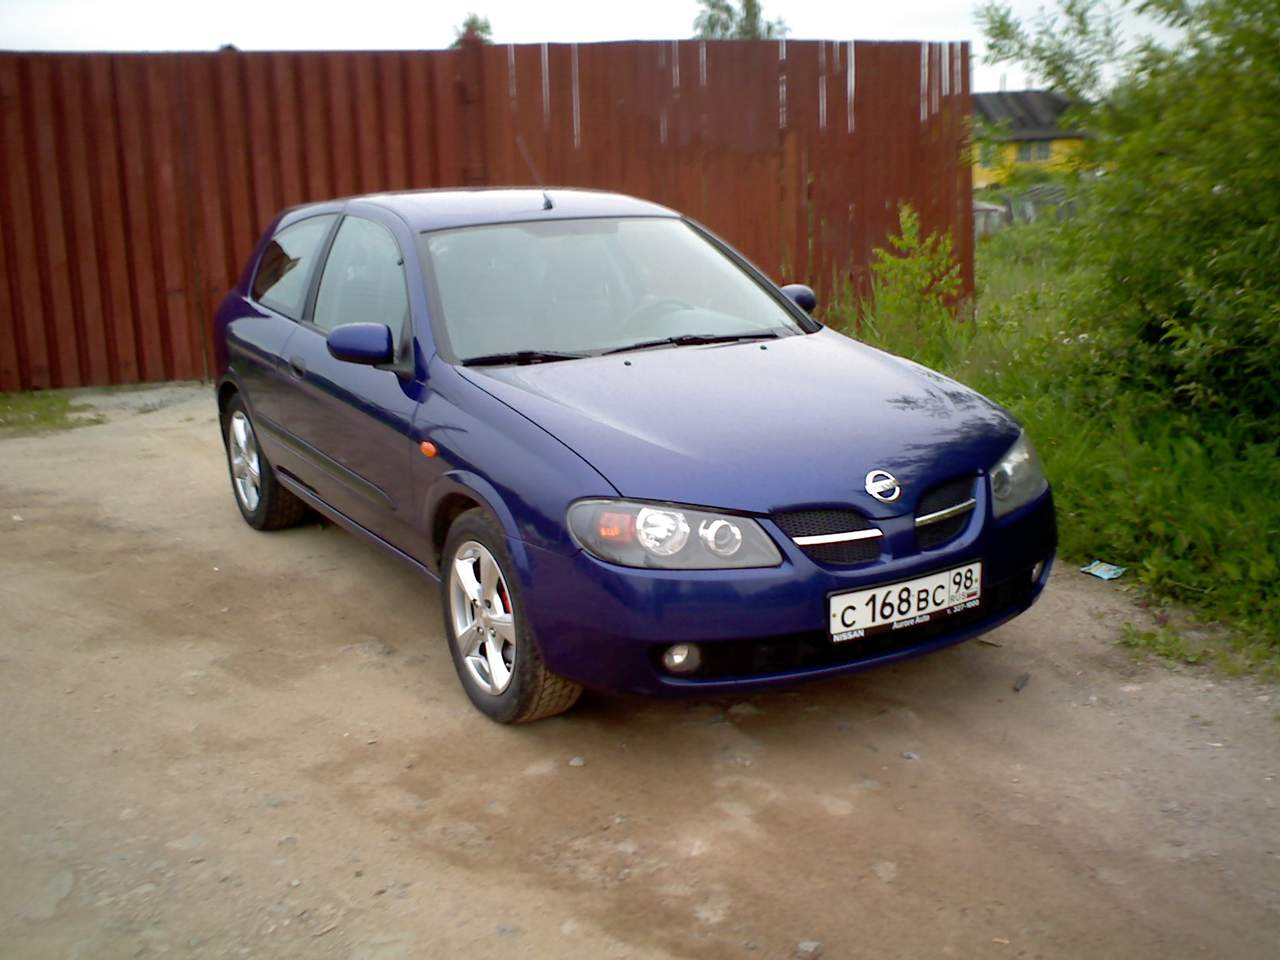 2002 nissan almera pictures gasoline ff manual for sale. Black Bedroom Furniture Sets. Home Design Ideas